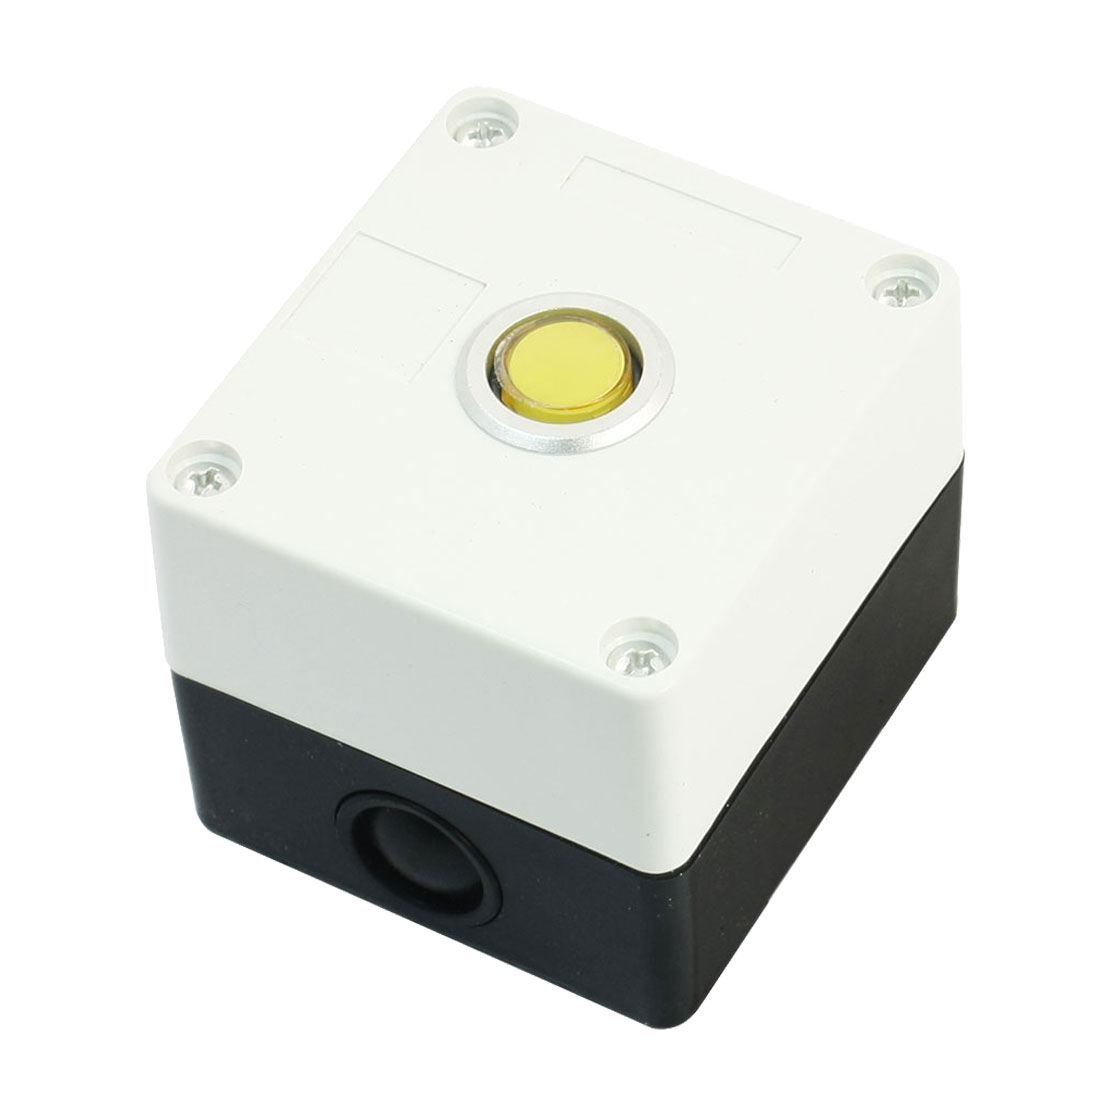 DC 24V Yellow Light Lamp SPDT 1 NO 1 NC 5-Pin Soldering Latching Action Push Button Station Box